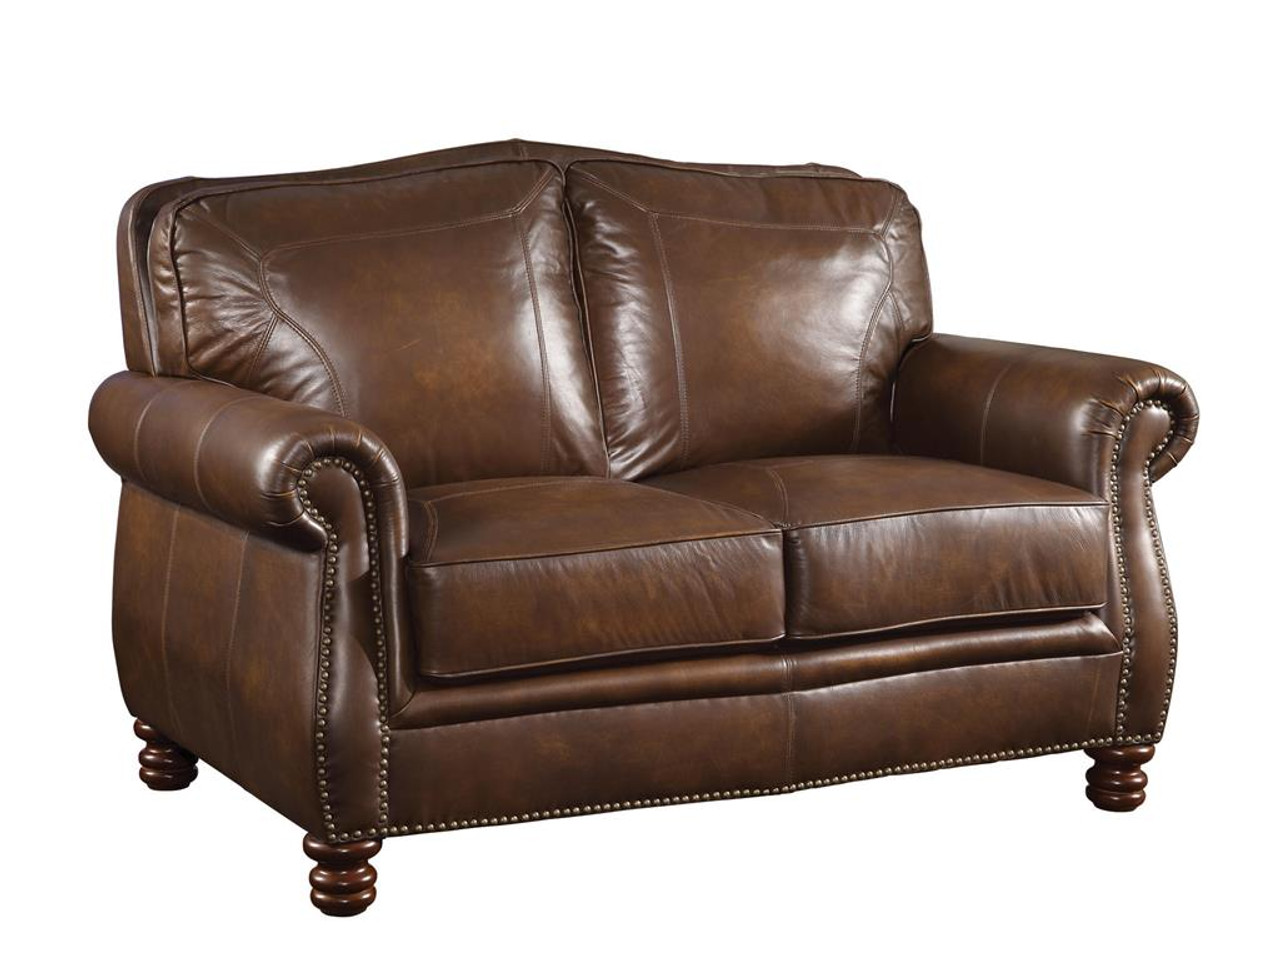 Phenomenal Payton Top Grain Leather Sofa And Loveseat Ocoug Best Dining Table And Chair Ideas Images Ocougorg